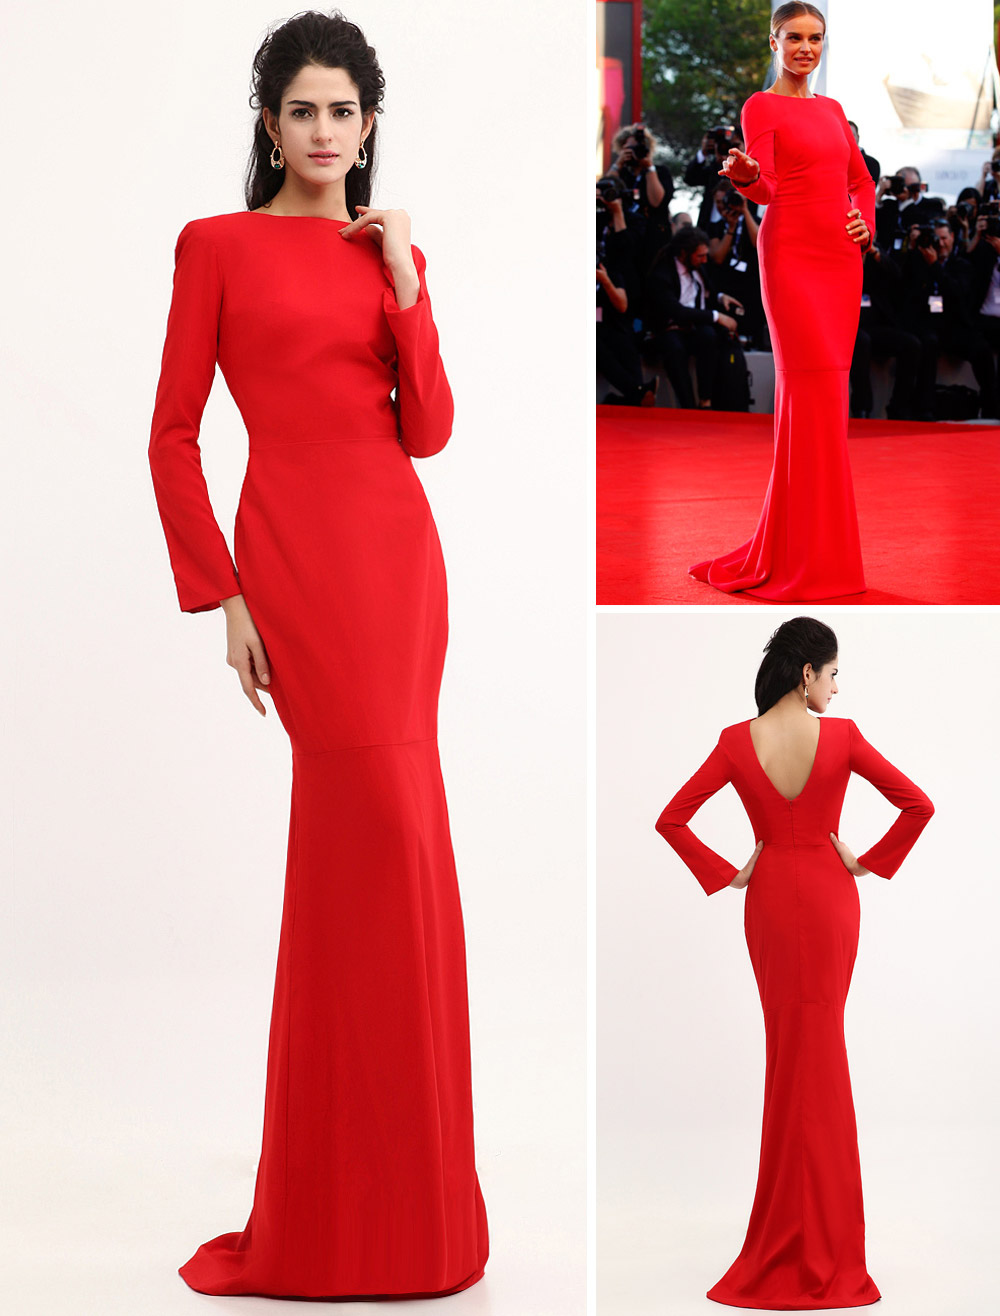 63409c3e69e ... Red Evening Dress Mermaid Backless Satin Dress Wedding Guest Dress-No.8.  12. 25%OFF. Color Ture Red